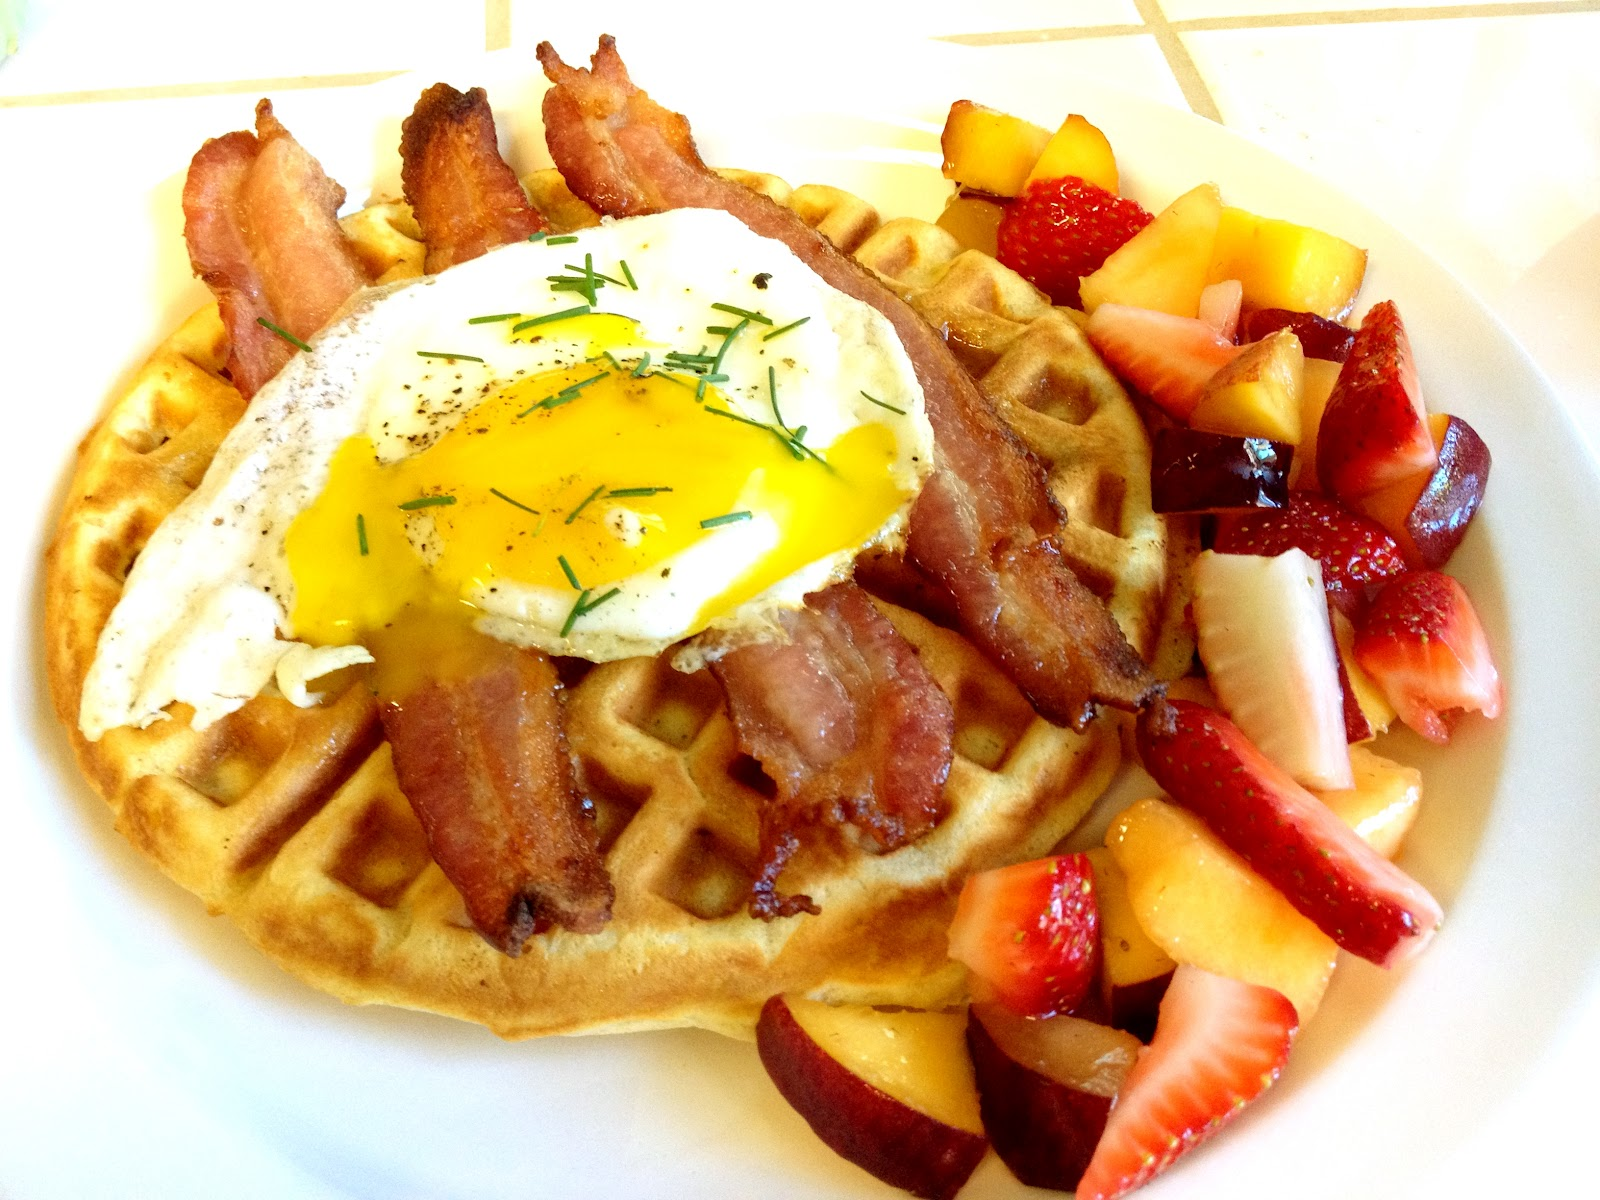 Evolution of a Foodie: Sour Cream Waffles topped with Bacon and an Egg